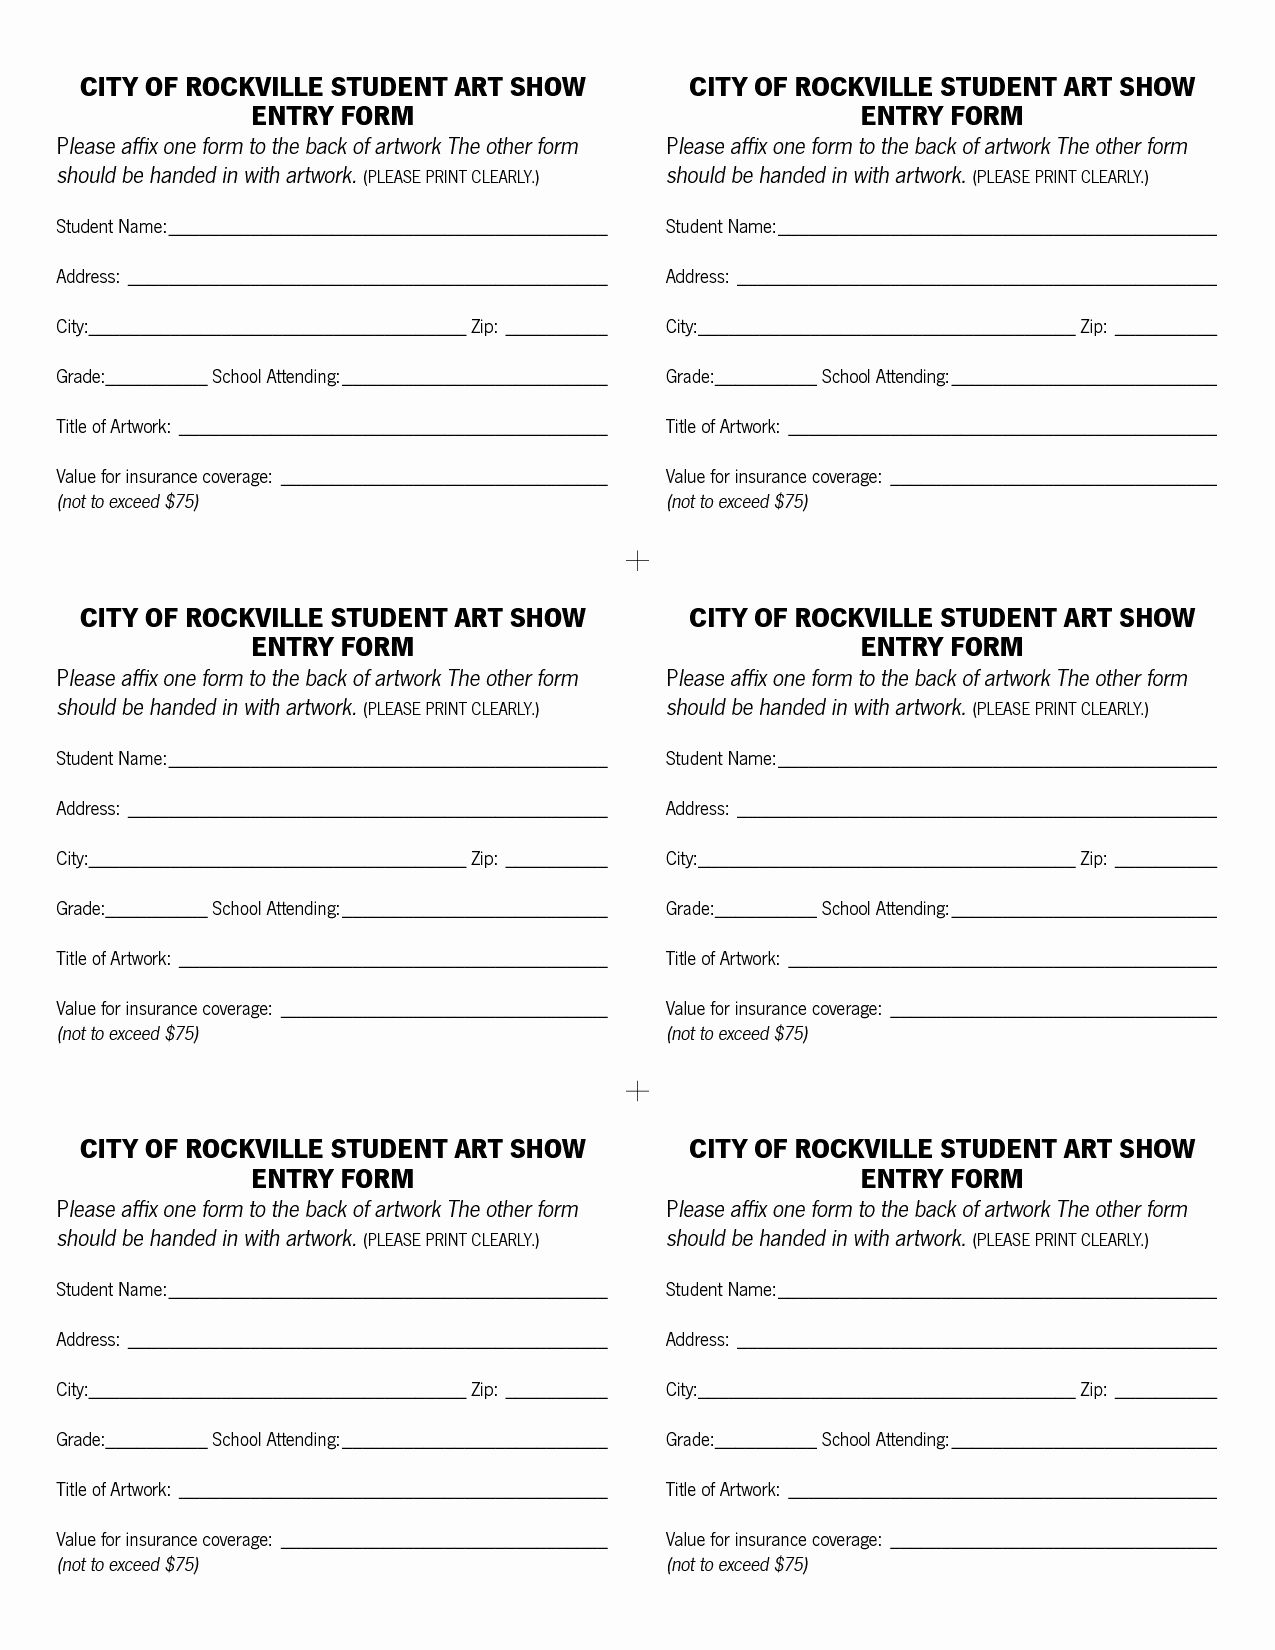 Door Prize Entry Form Template Best Of Search Results For Door Prize Registration Form Template Templates Word Template Contract Template